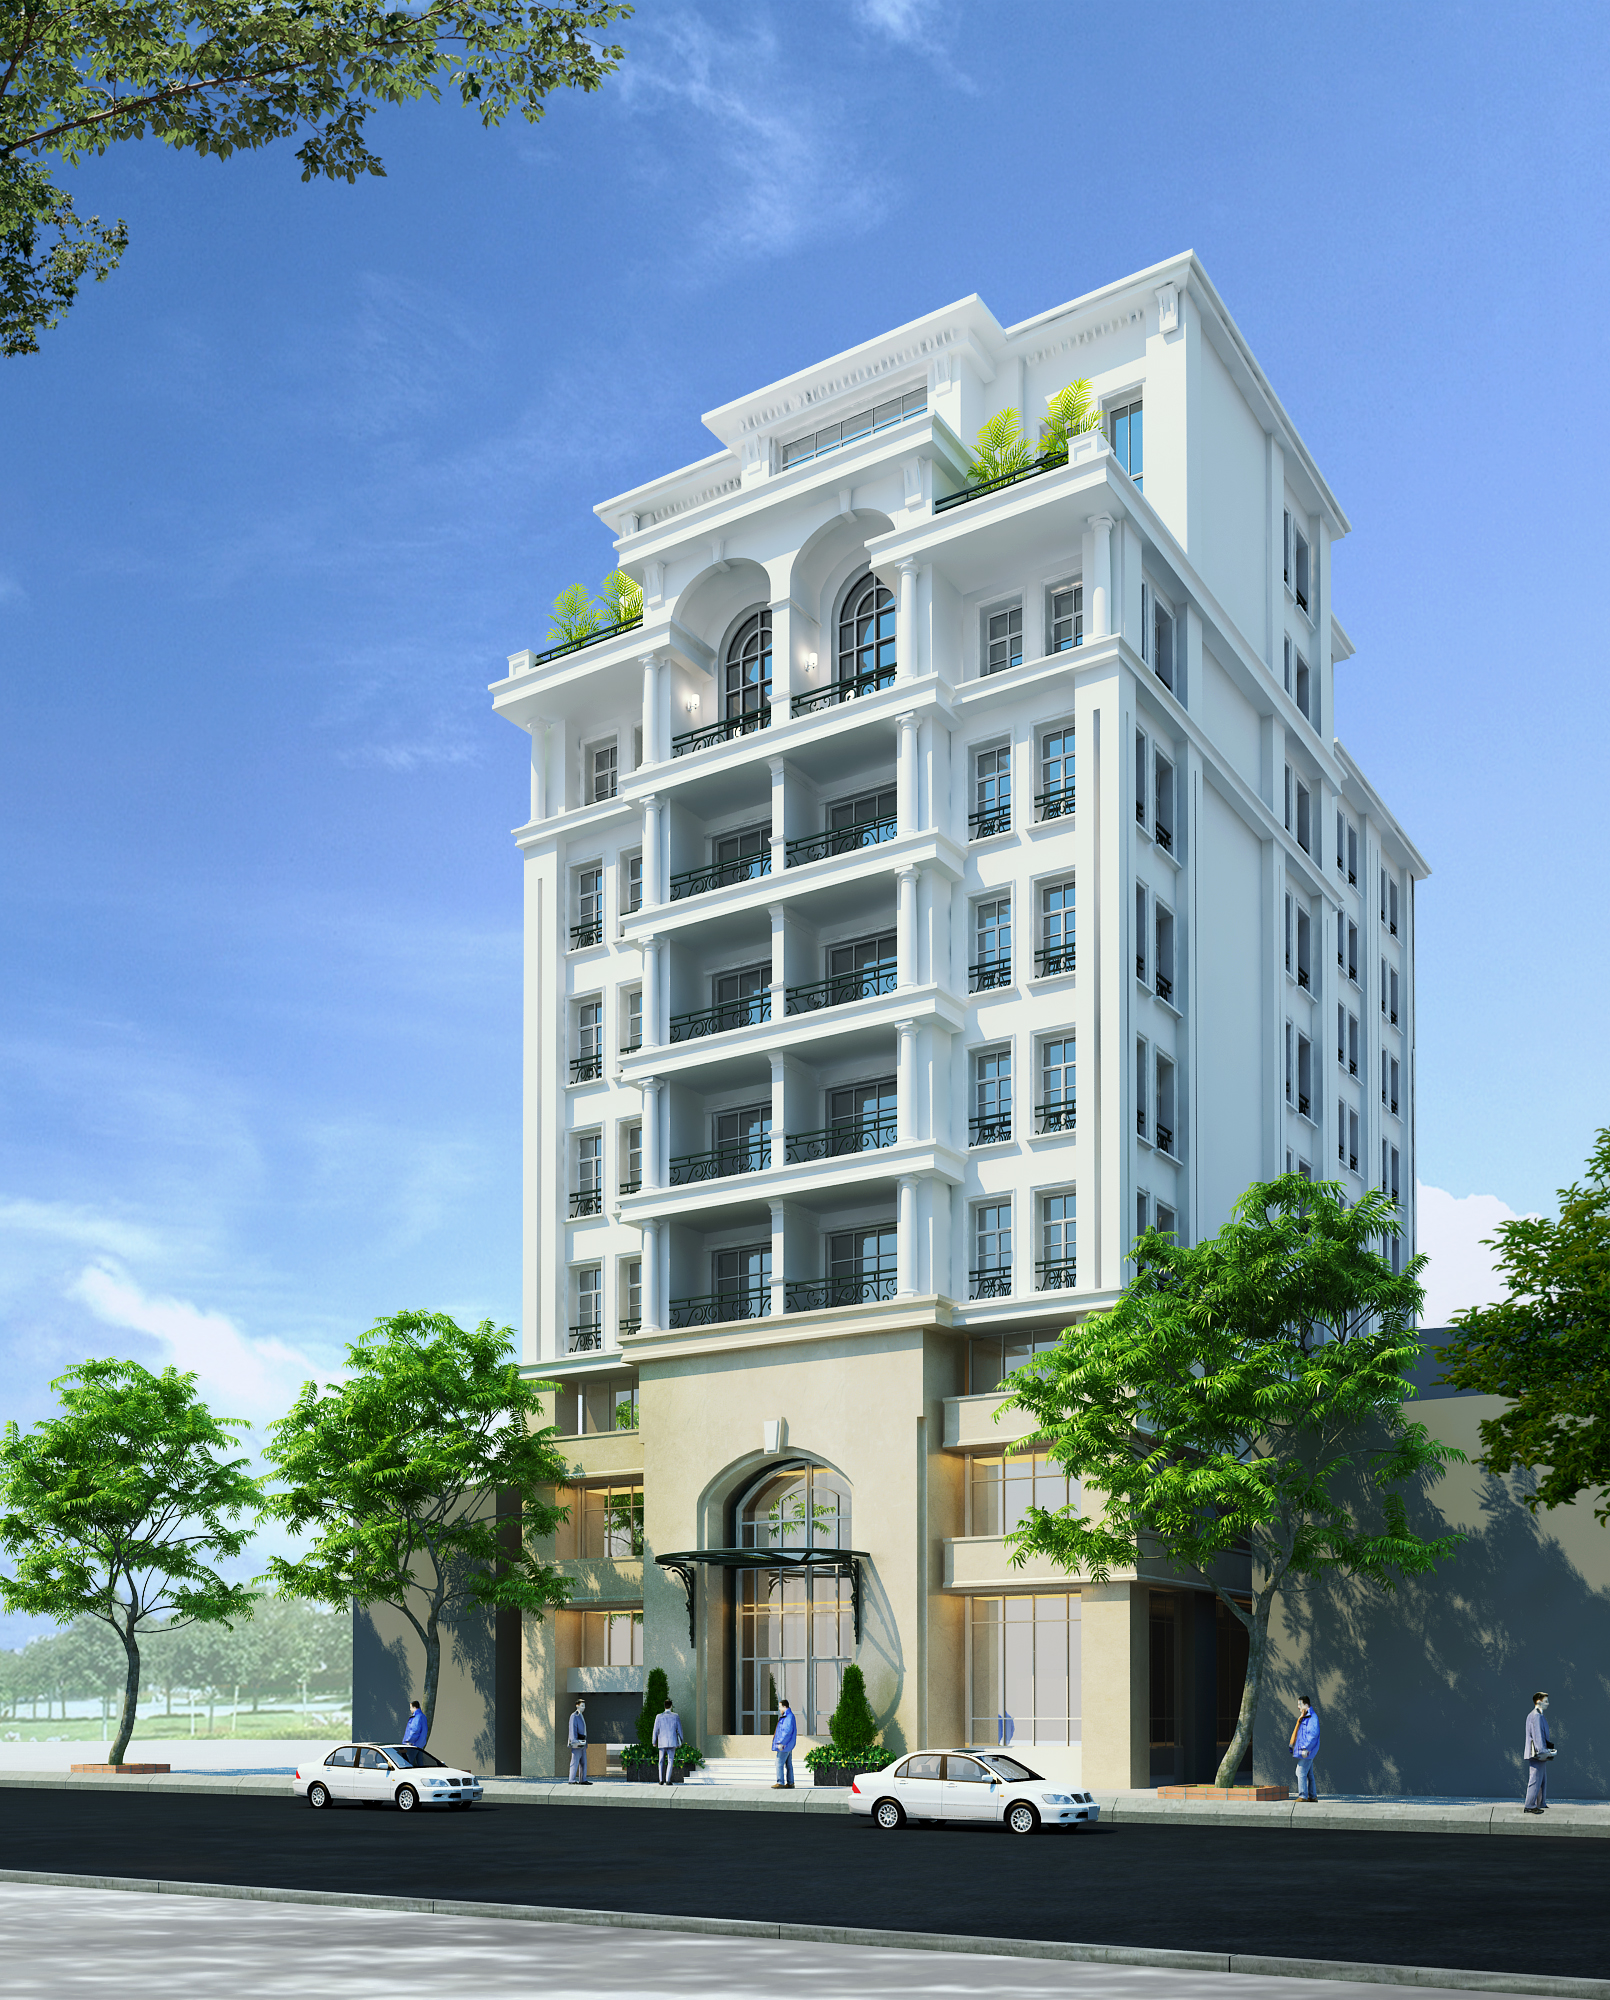 New Construction Apartment Building: Detailed Neoclassical Apartment Building 3D Model MAX